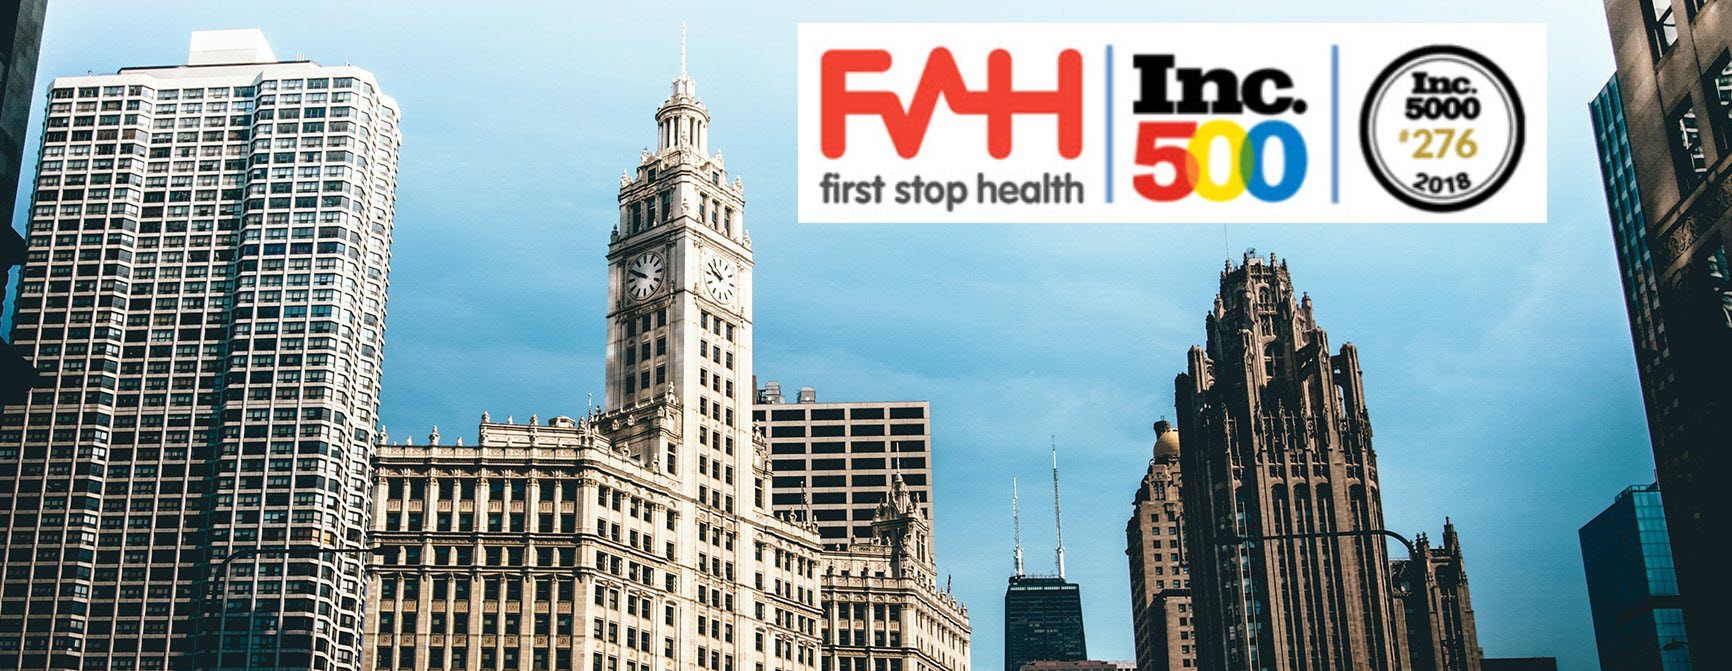 Inc. Magazine Features First Stop Health as One of Chicago's Fastest Growing Privately-Held Companies